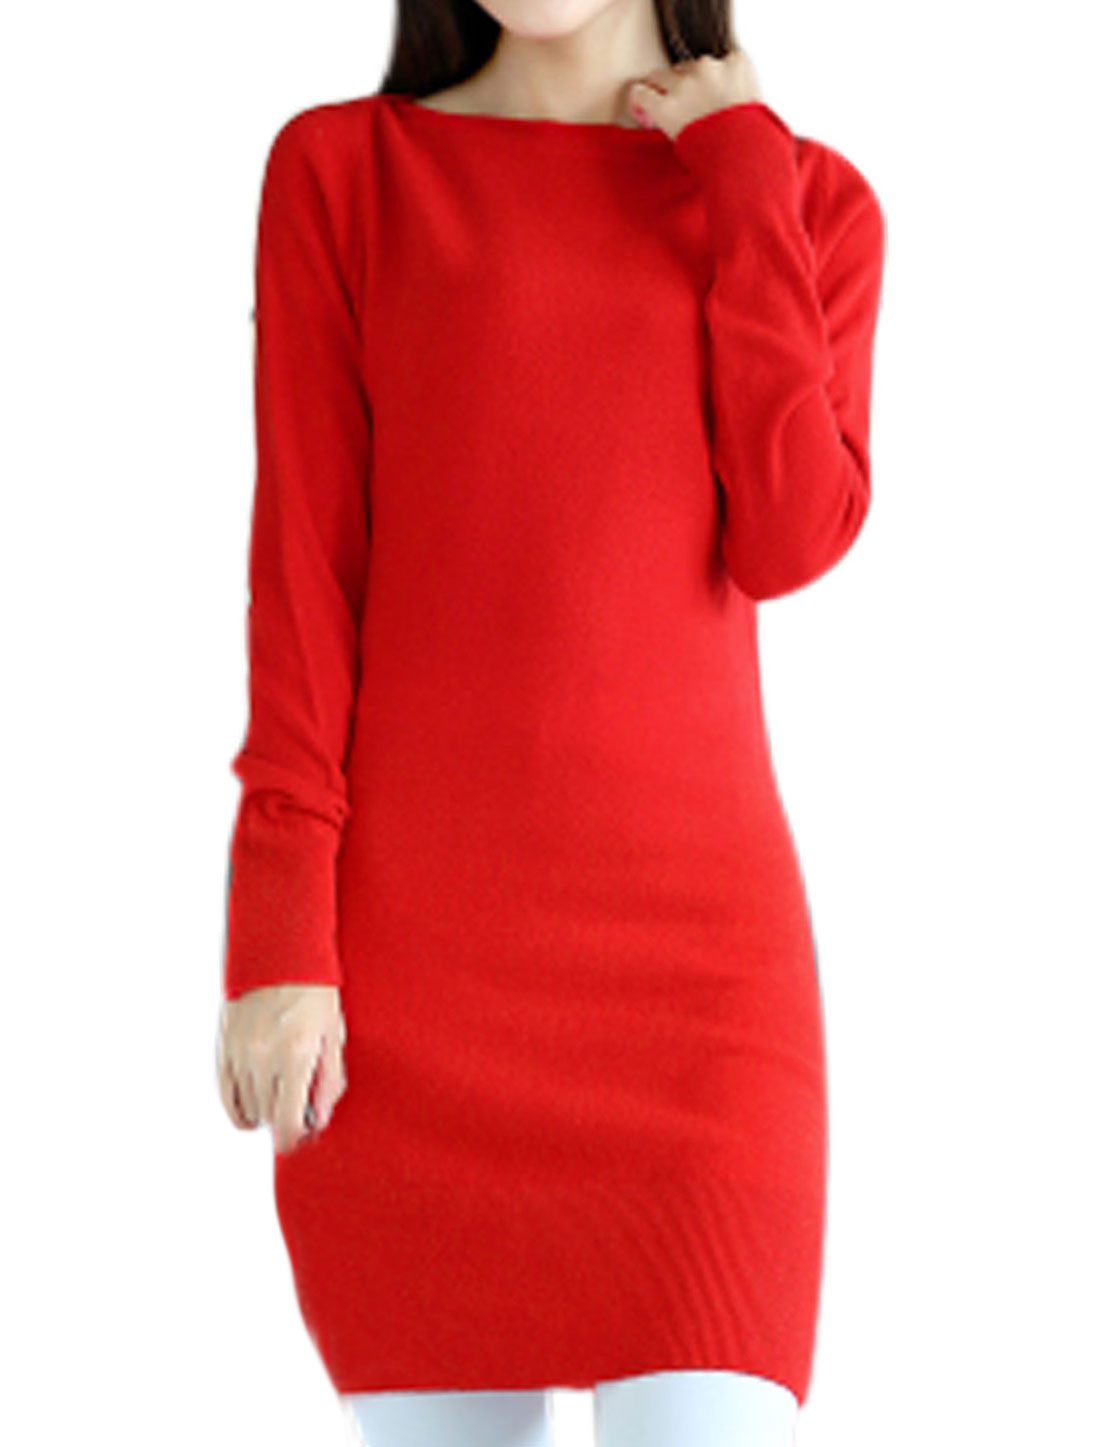 Slipover Boat Neck Stretchy Red Tunic Knit Top for Ladies S